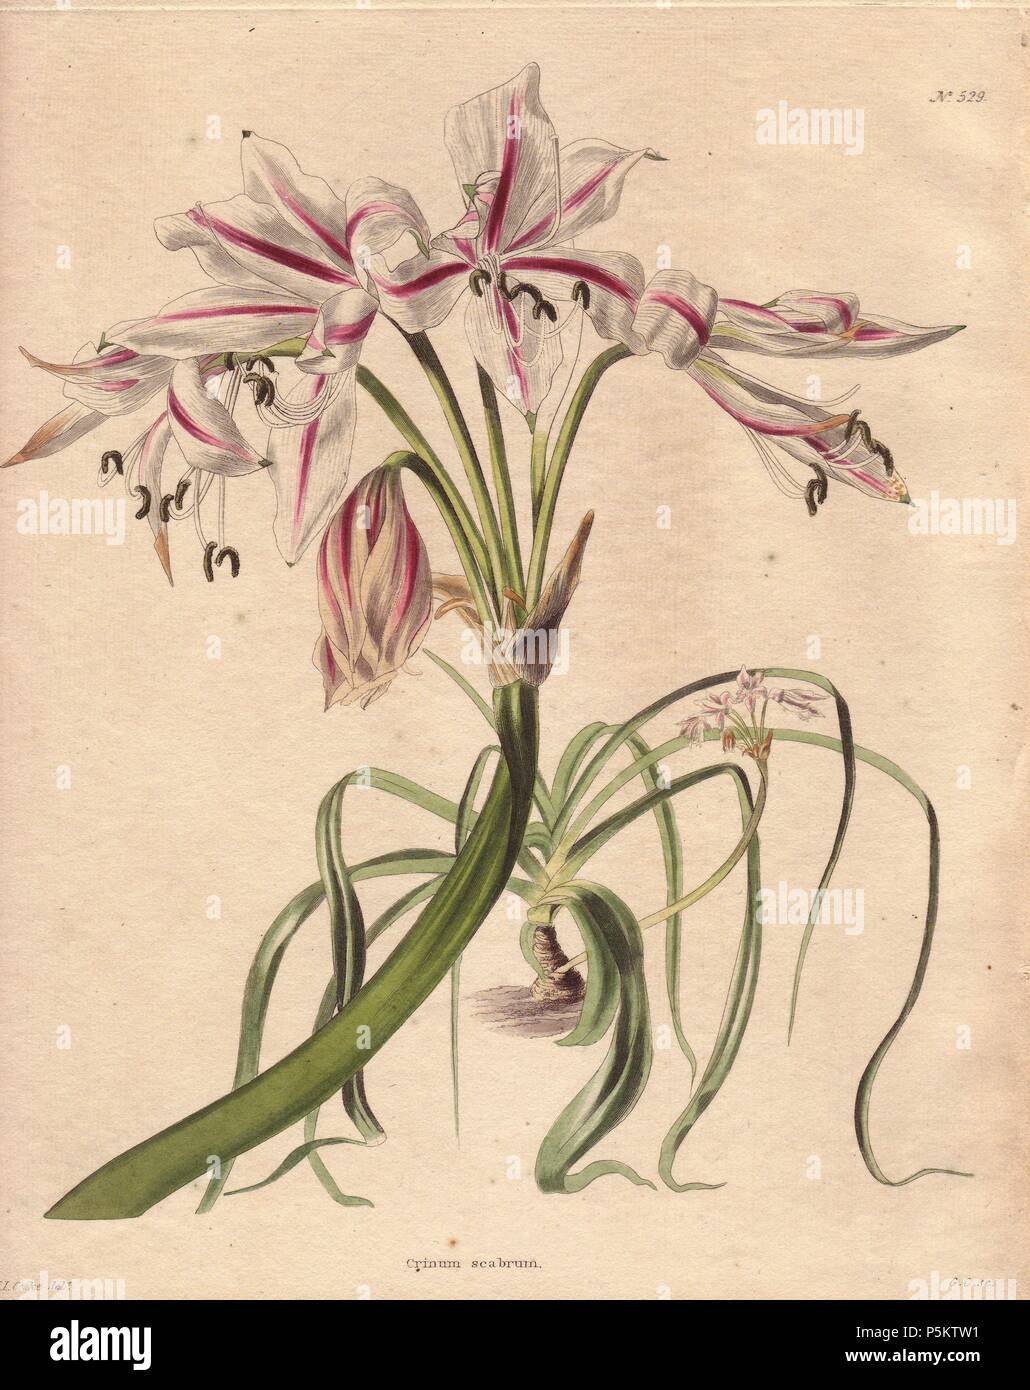 Crinum Scabrum Pale Pink Crinum With Langorous White And Pink